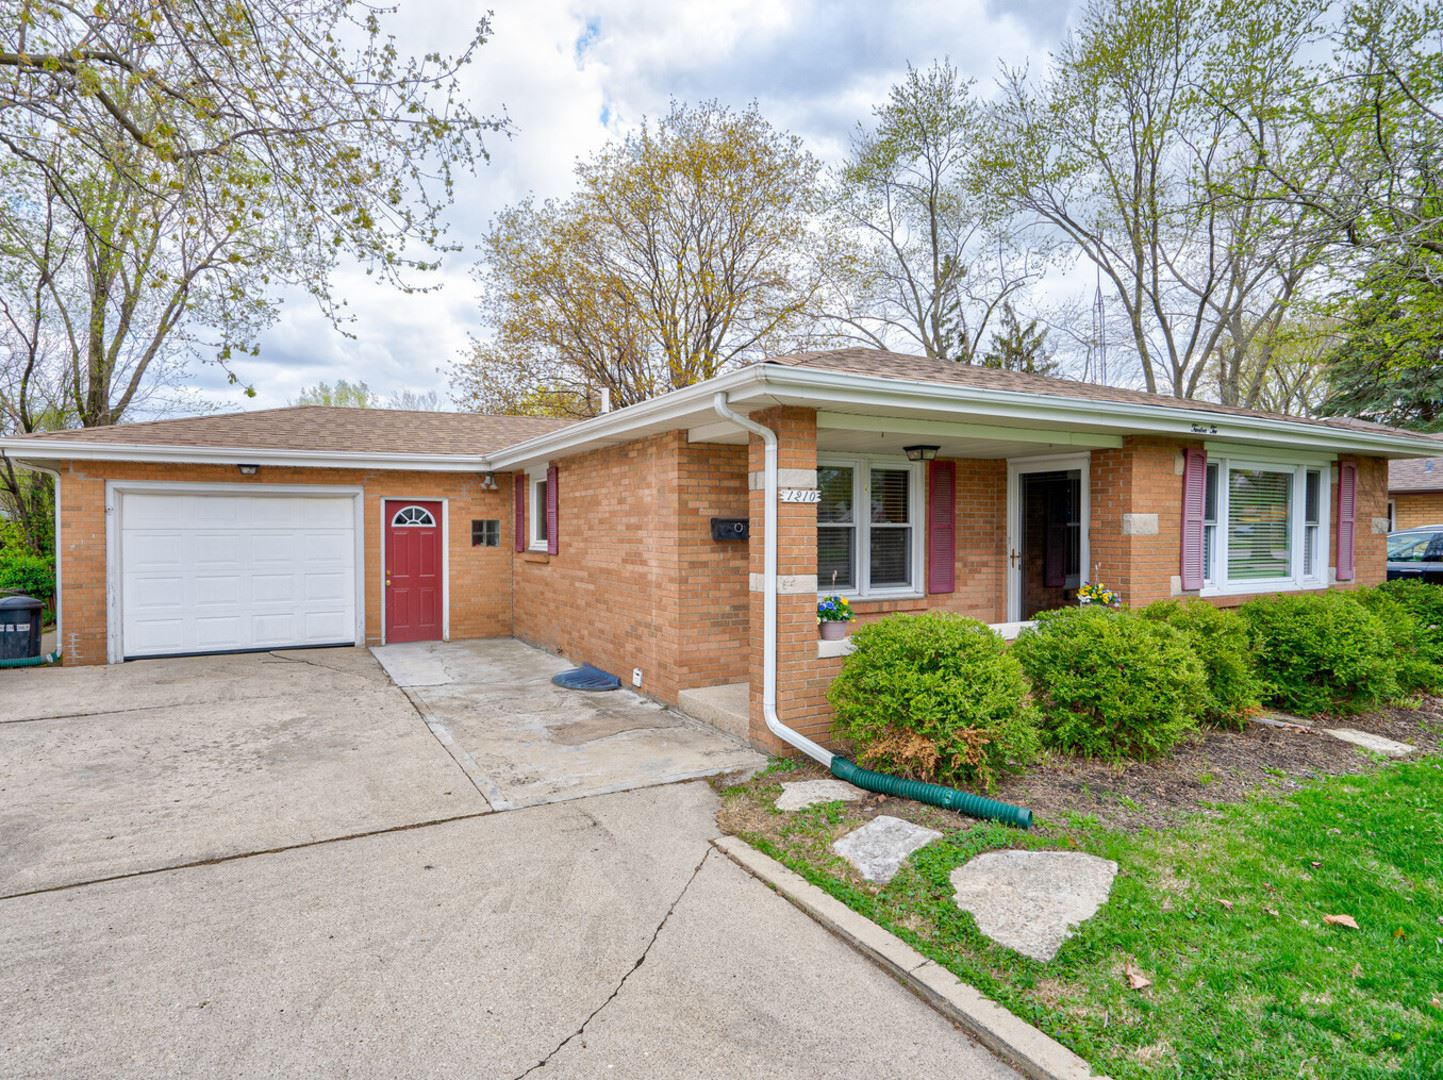 Photo of 1210 douglas Street, Joliet, IL 60435 (MLS # 11057899)